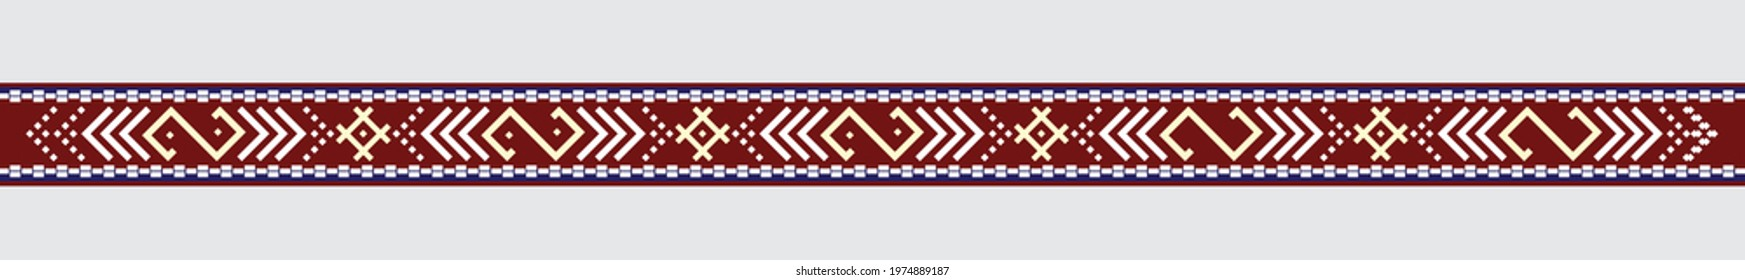 Latvian traditional ethnic ornament belt, national signs and symbols vector illustration in red and white